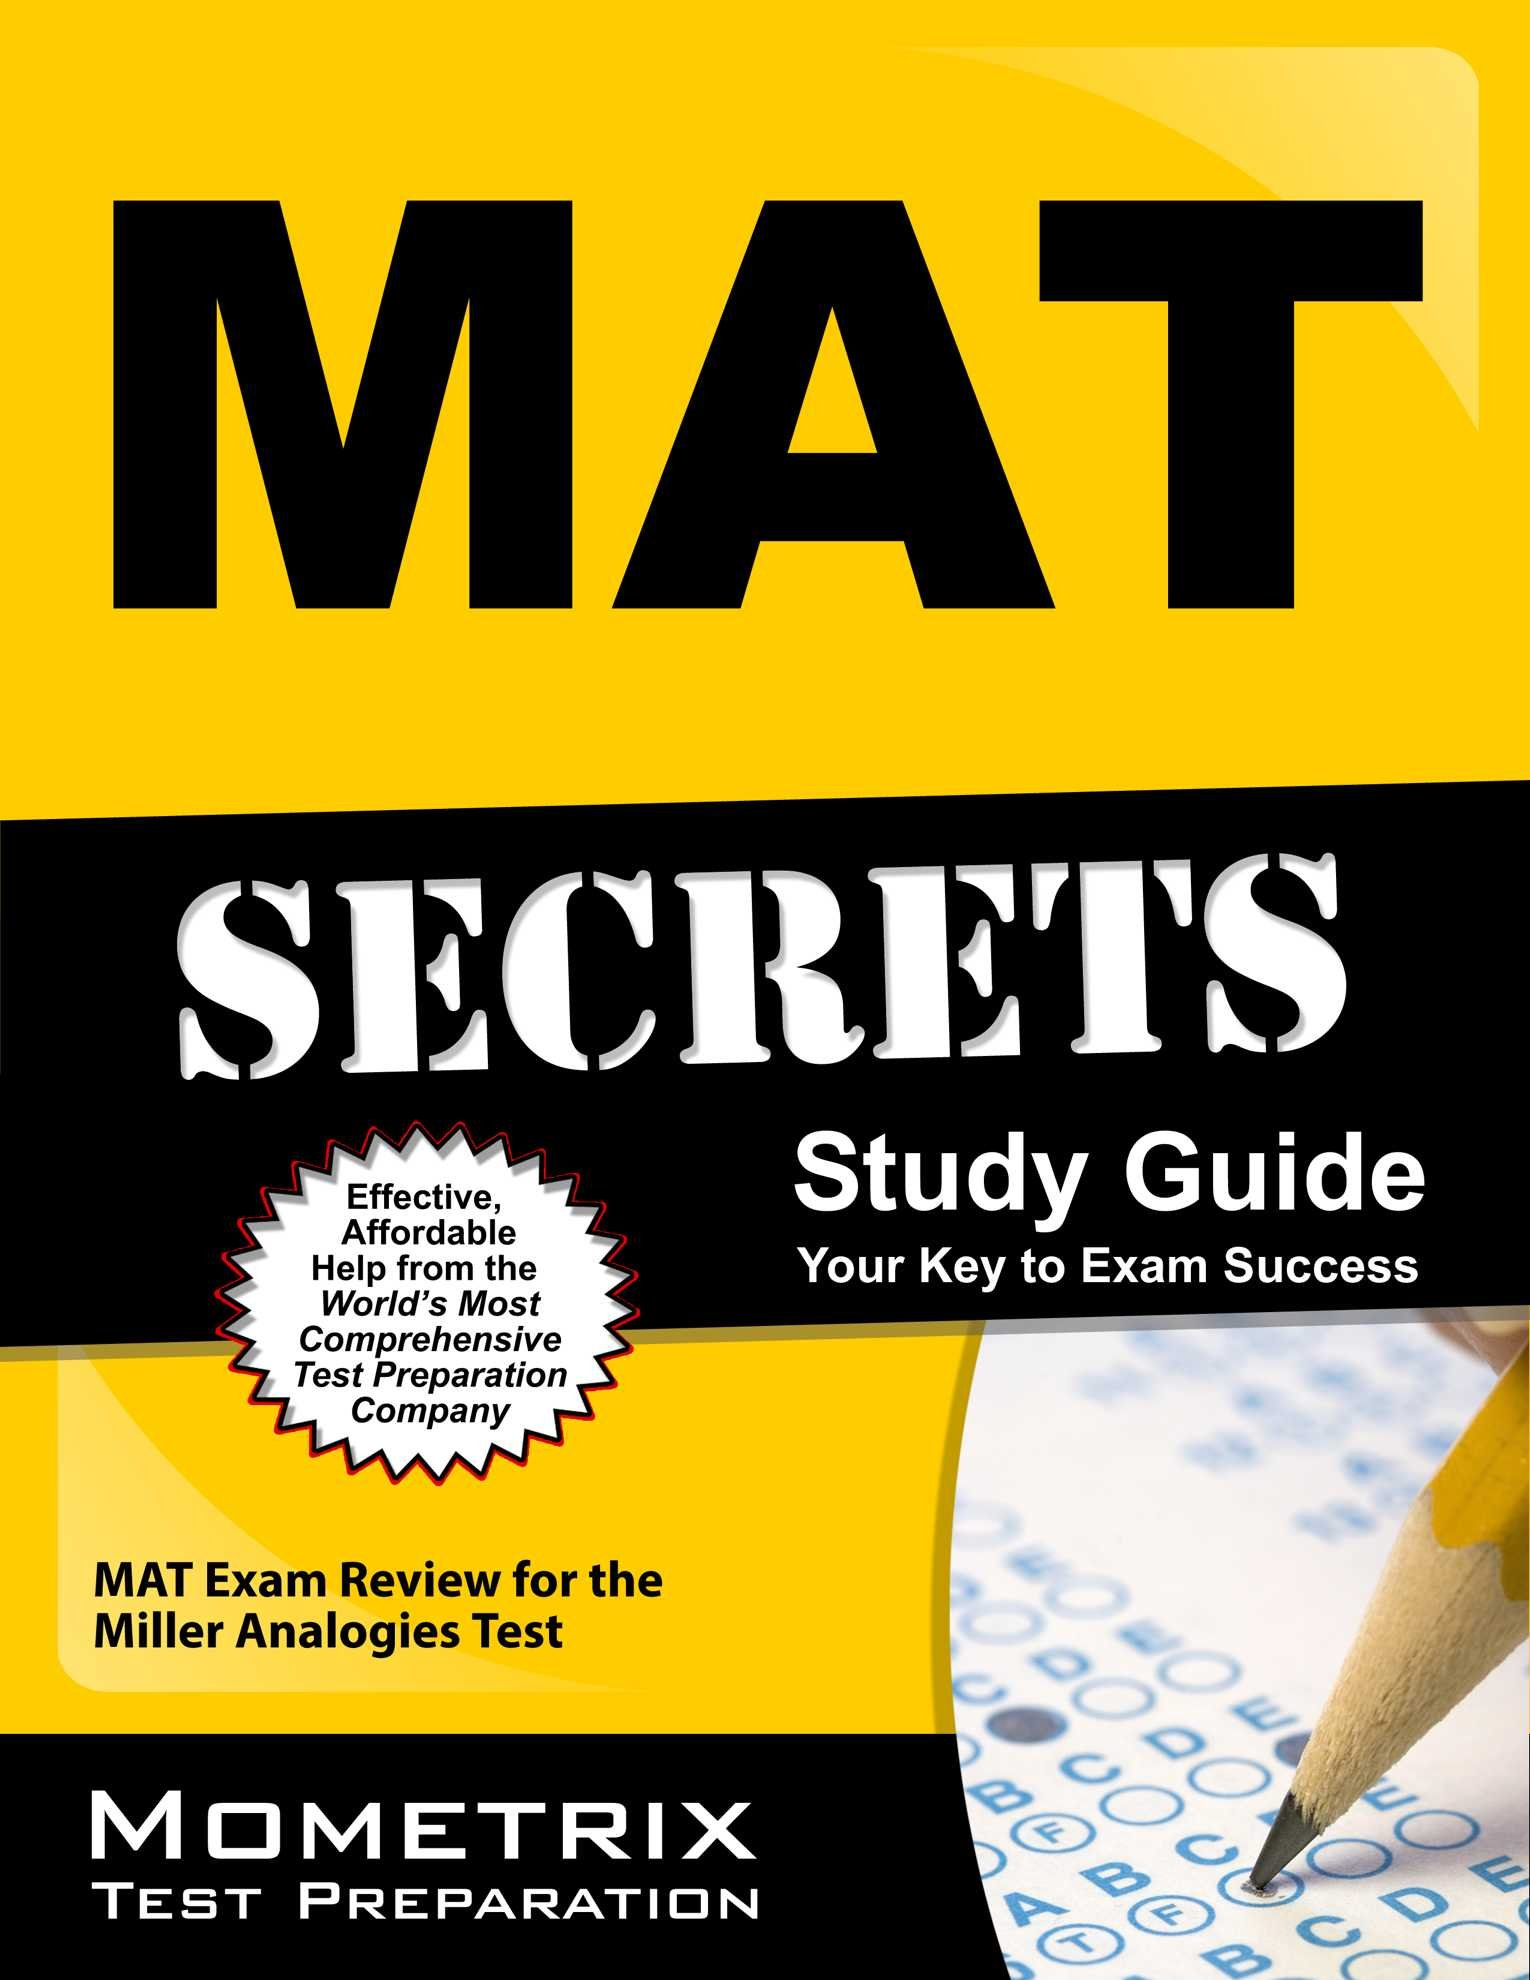 Which test do you recommend taking the GRE or the MAT? ?